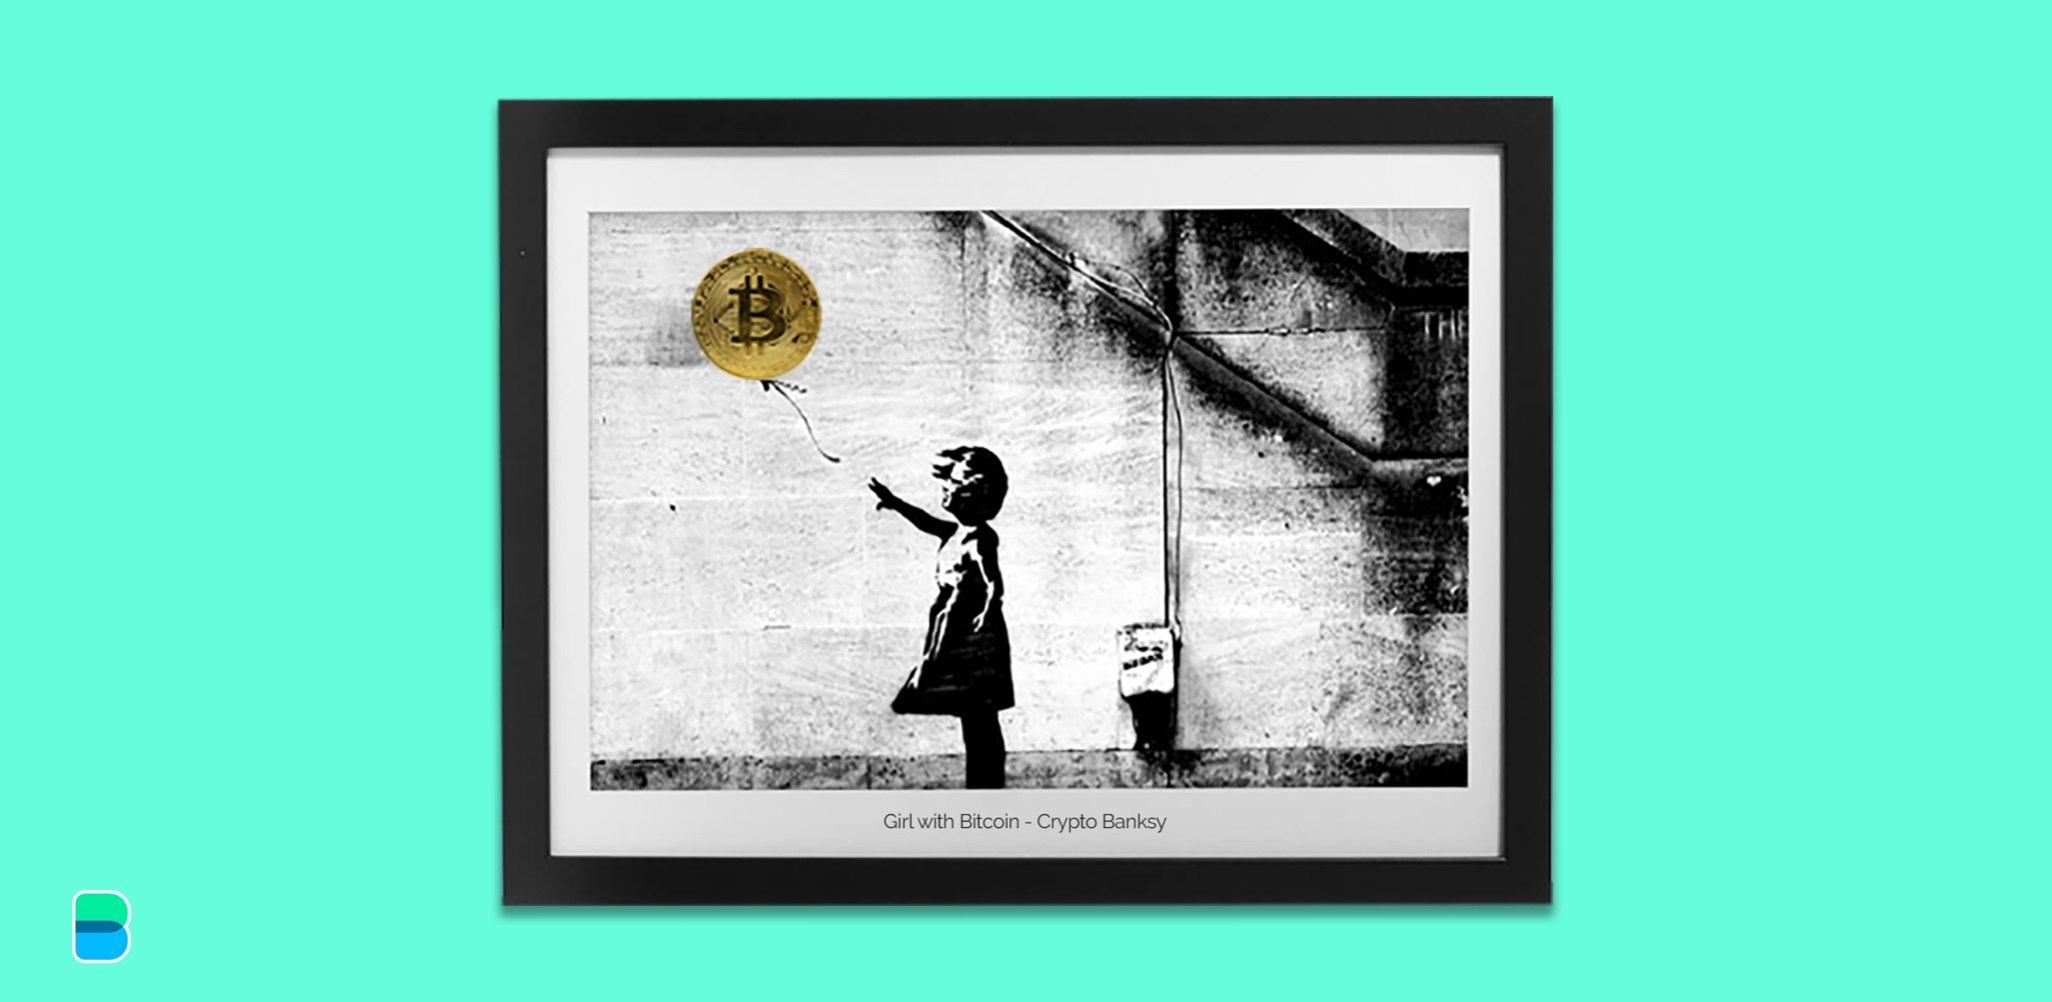 Have some spare bitcoin? Buy a Banksy